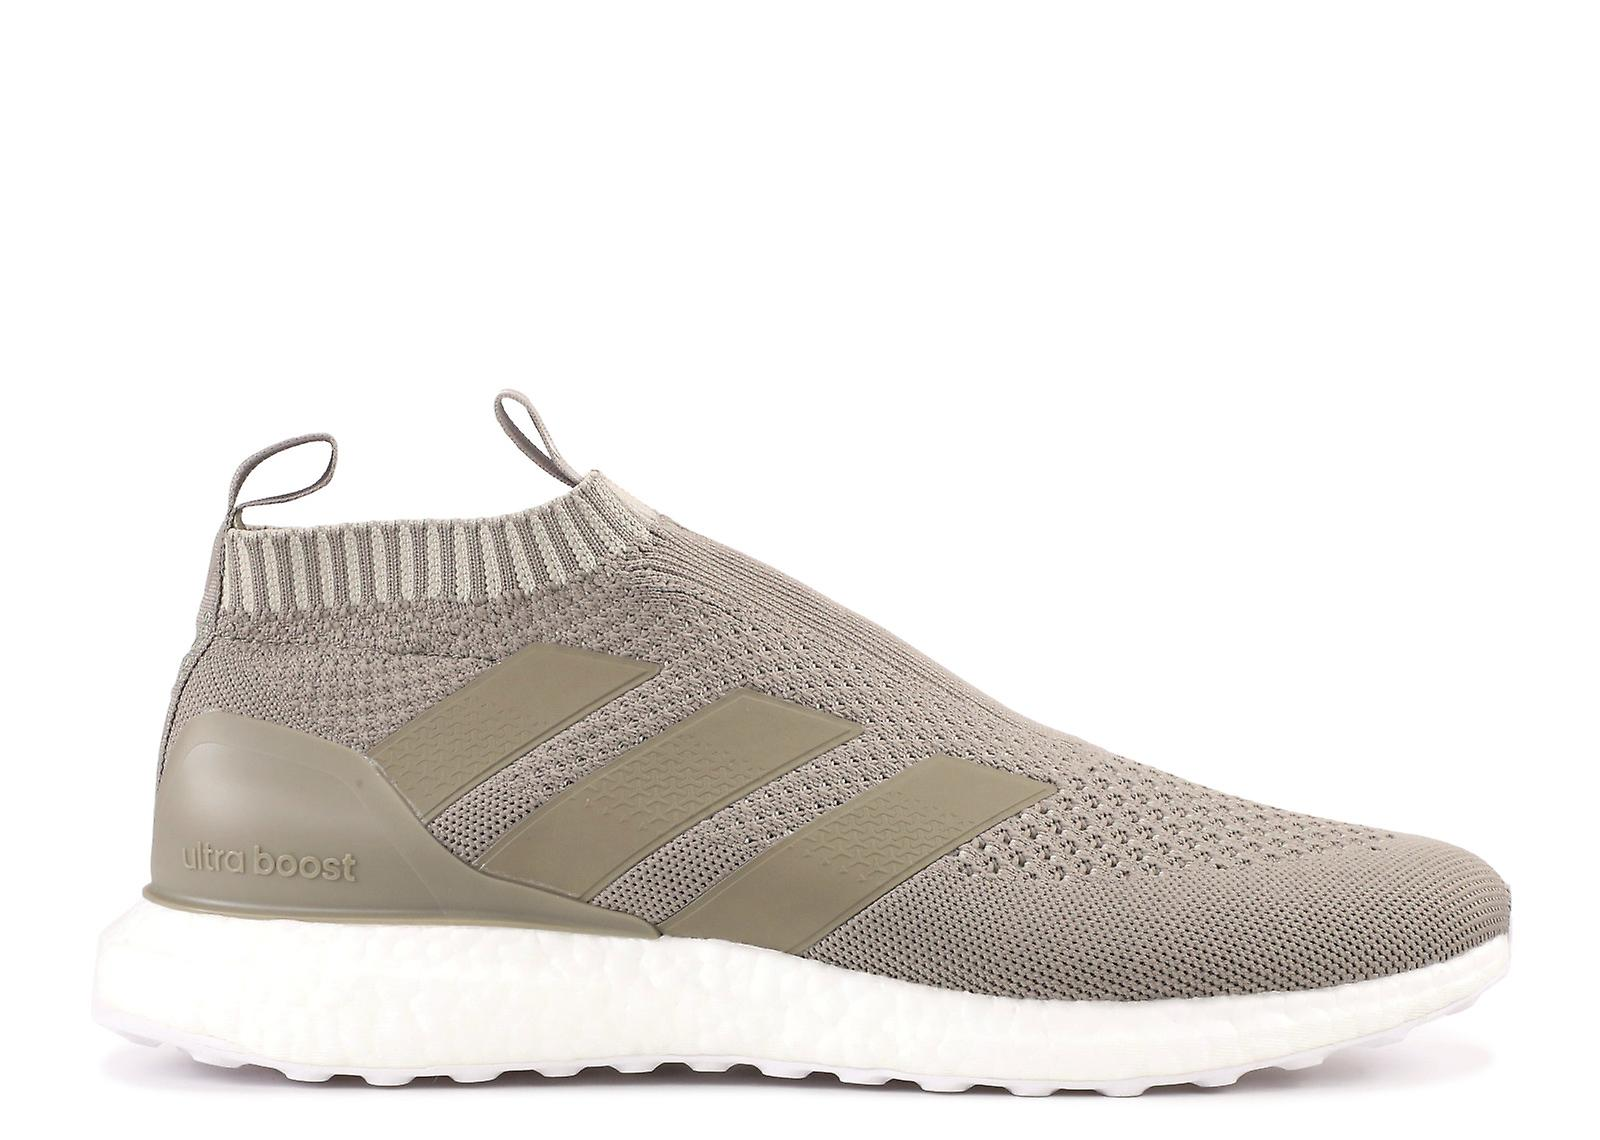 ACE 16 16 16 + contr?le pur Ultrab - Cg3655 - chaussures fde320